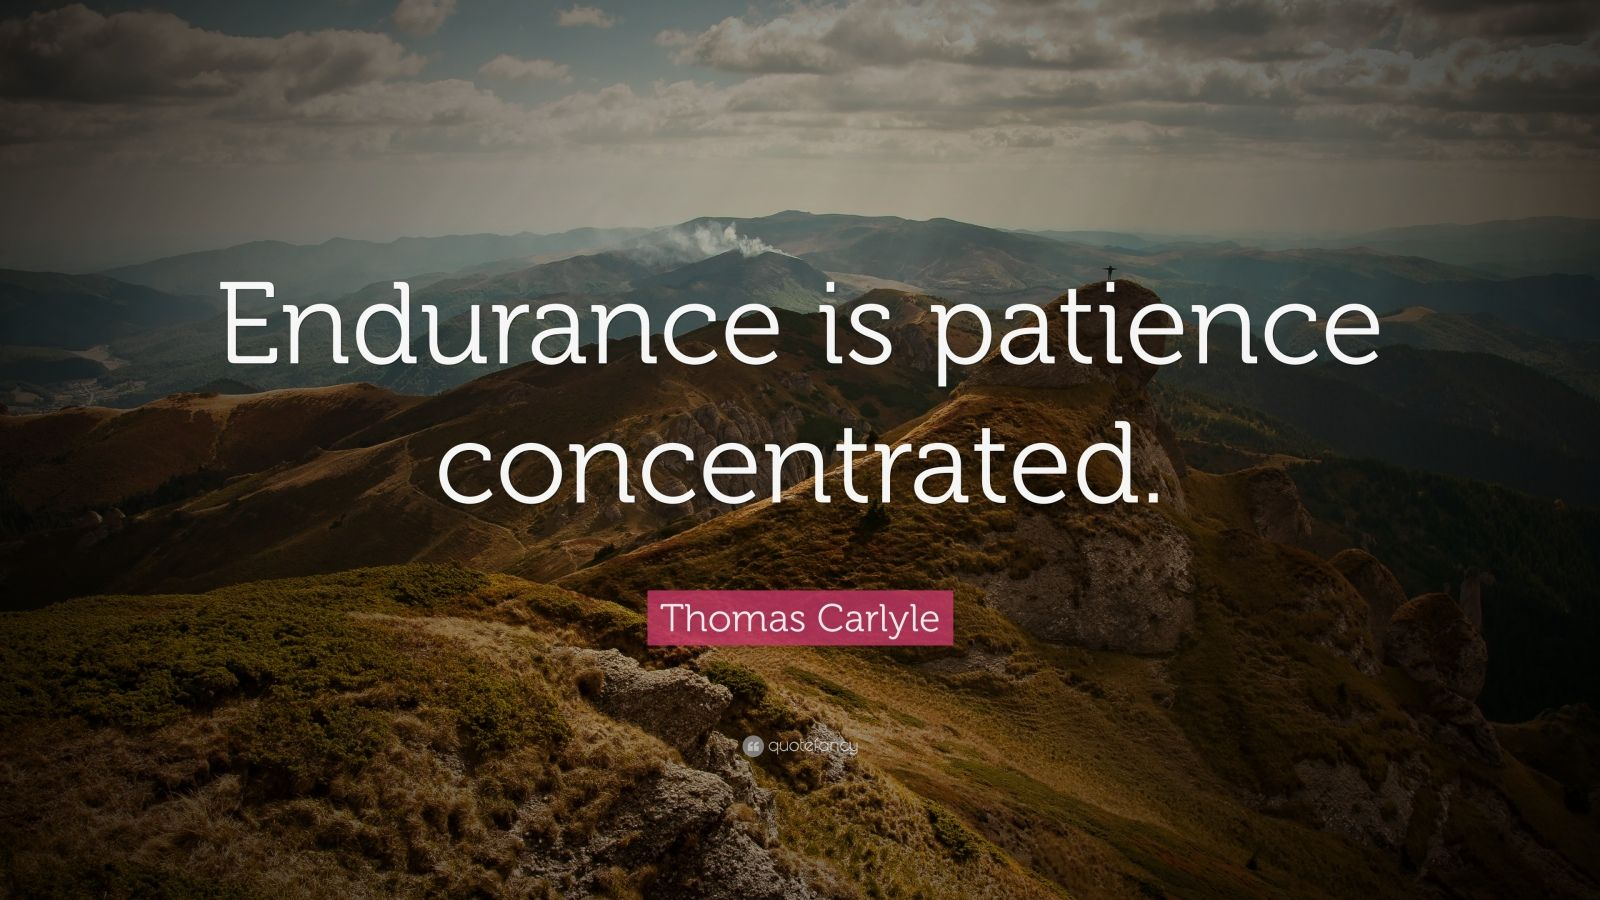 Endurance Quotes Patience Quotes 59 Wallpapers  Quotefancy